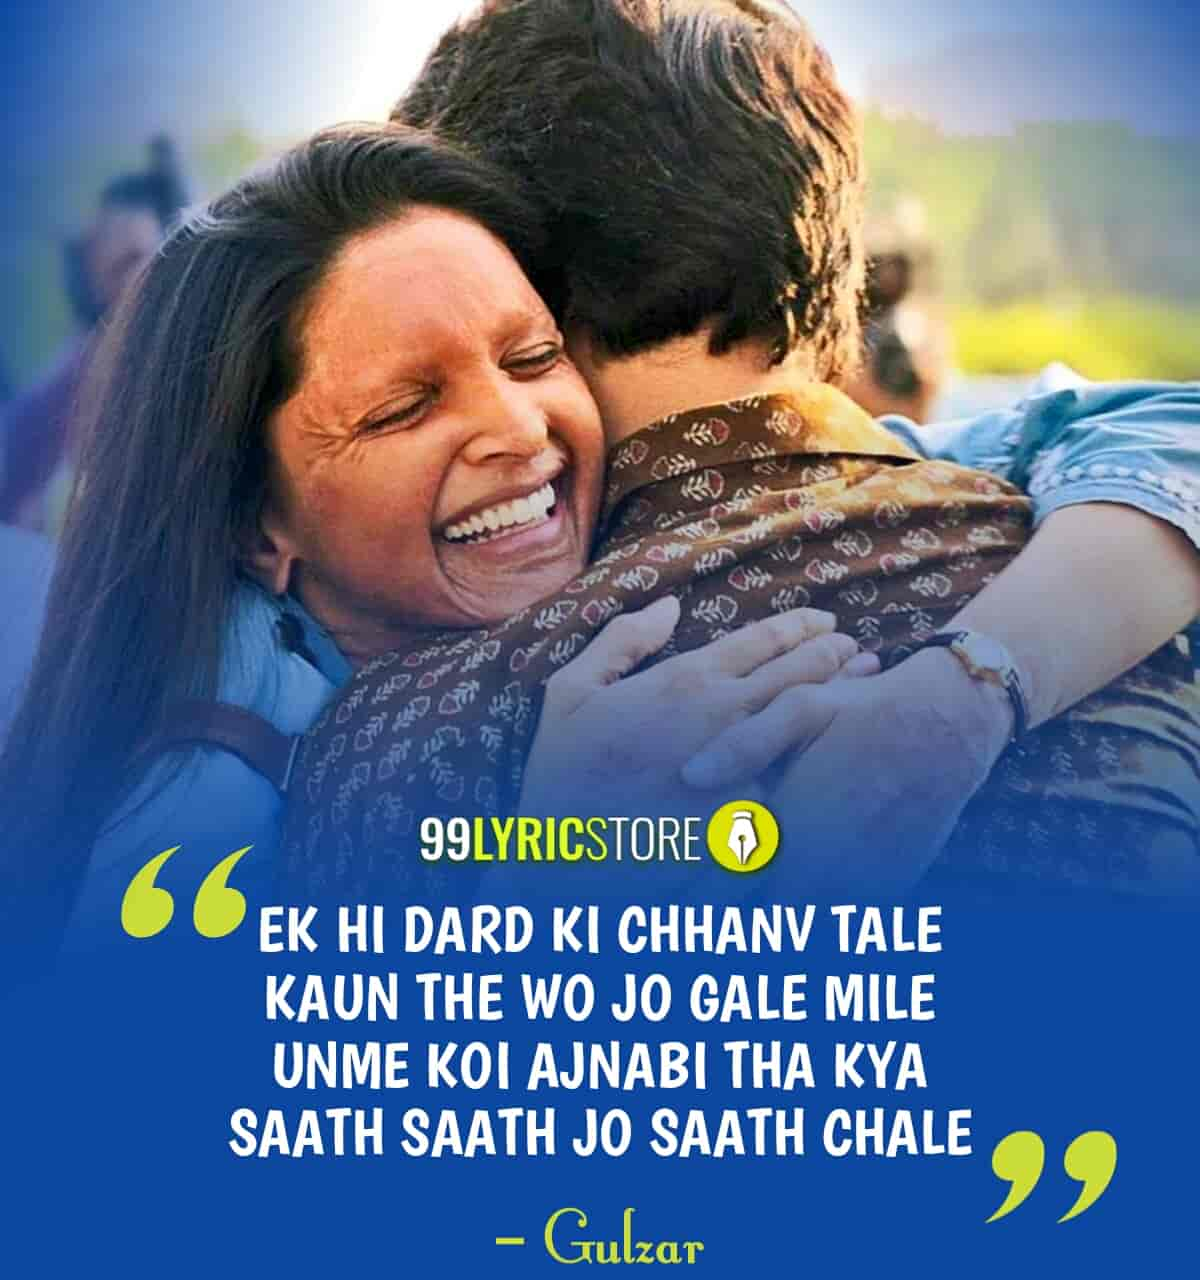 Nok Jhok Lyrics Images Chhapaak